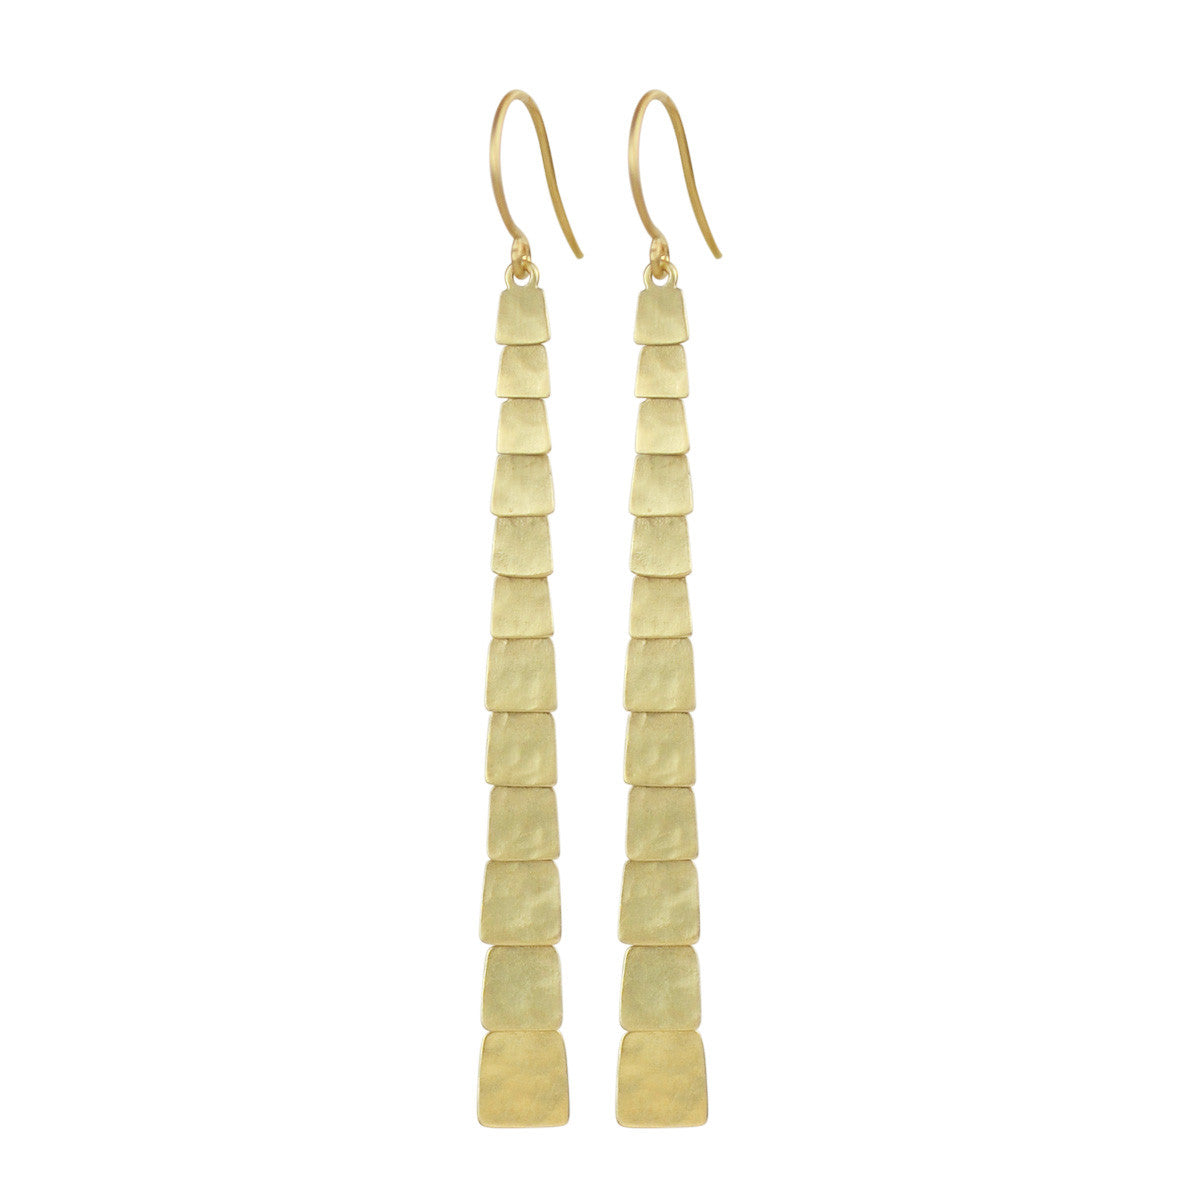 18K Gold Long Single Sequin Square Earrings